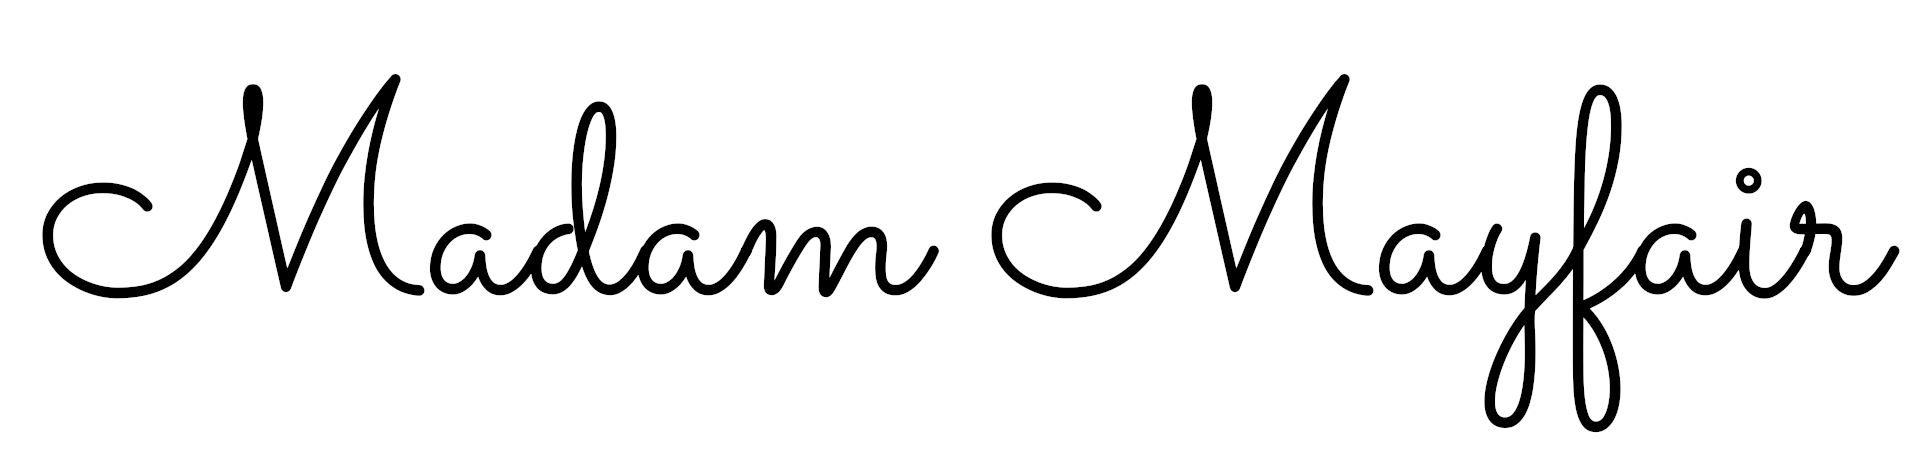 Madam Mayfair logo